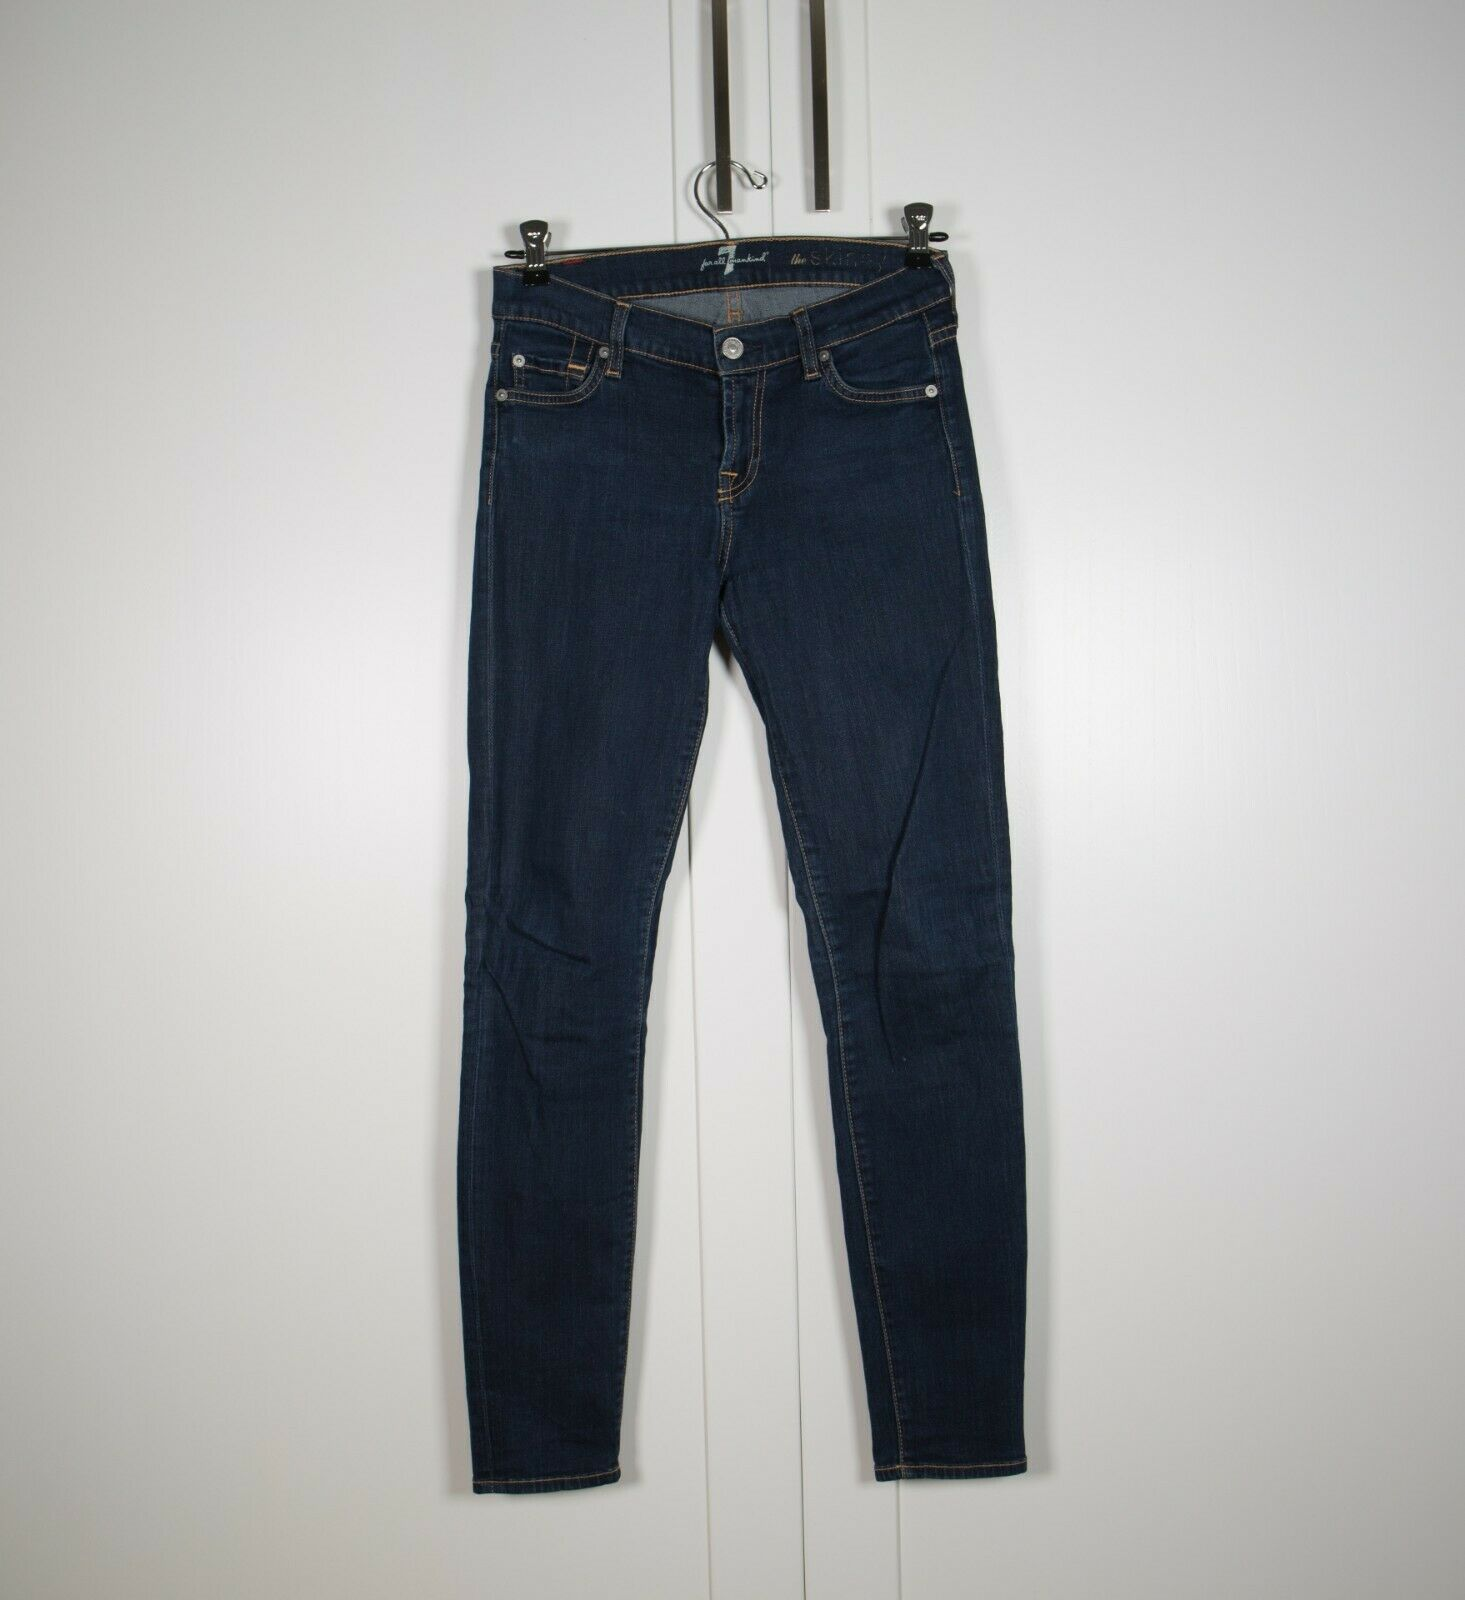 7 For All Mankind The Skinny Jeans Size 25 Dark Denim bluee Stretch Pant